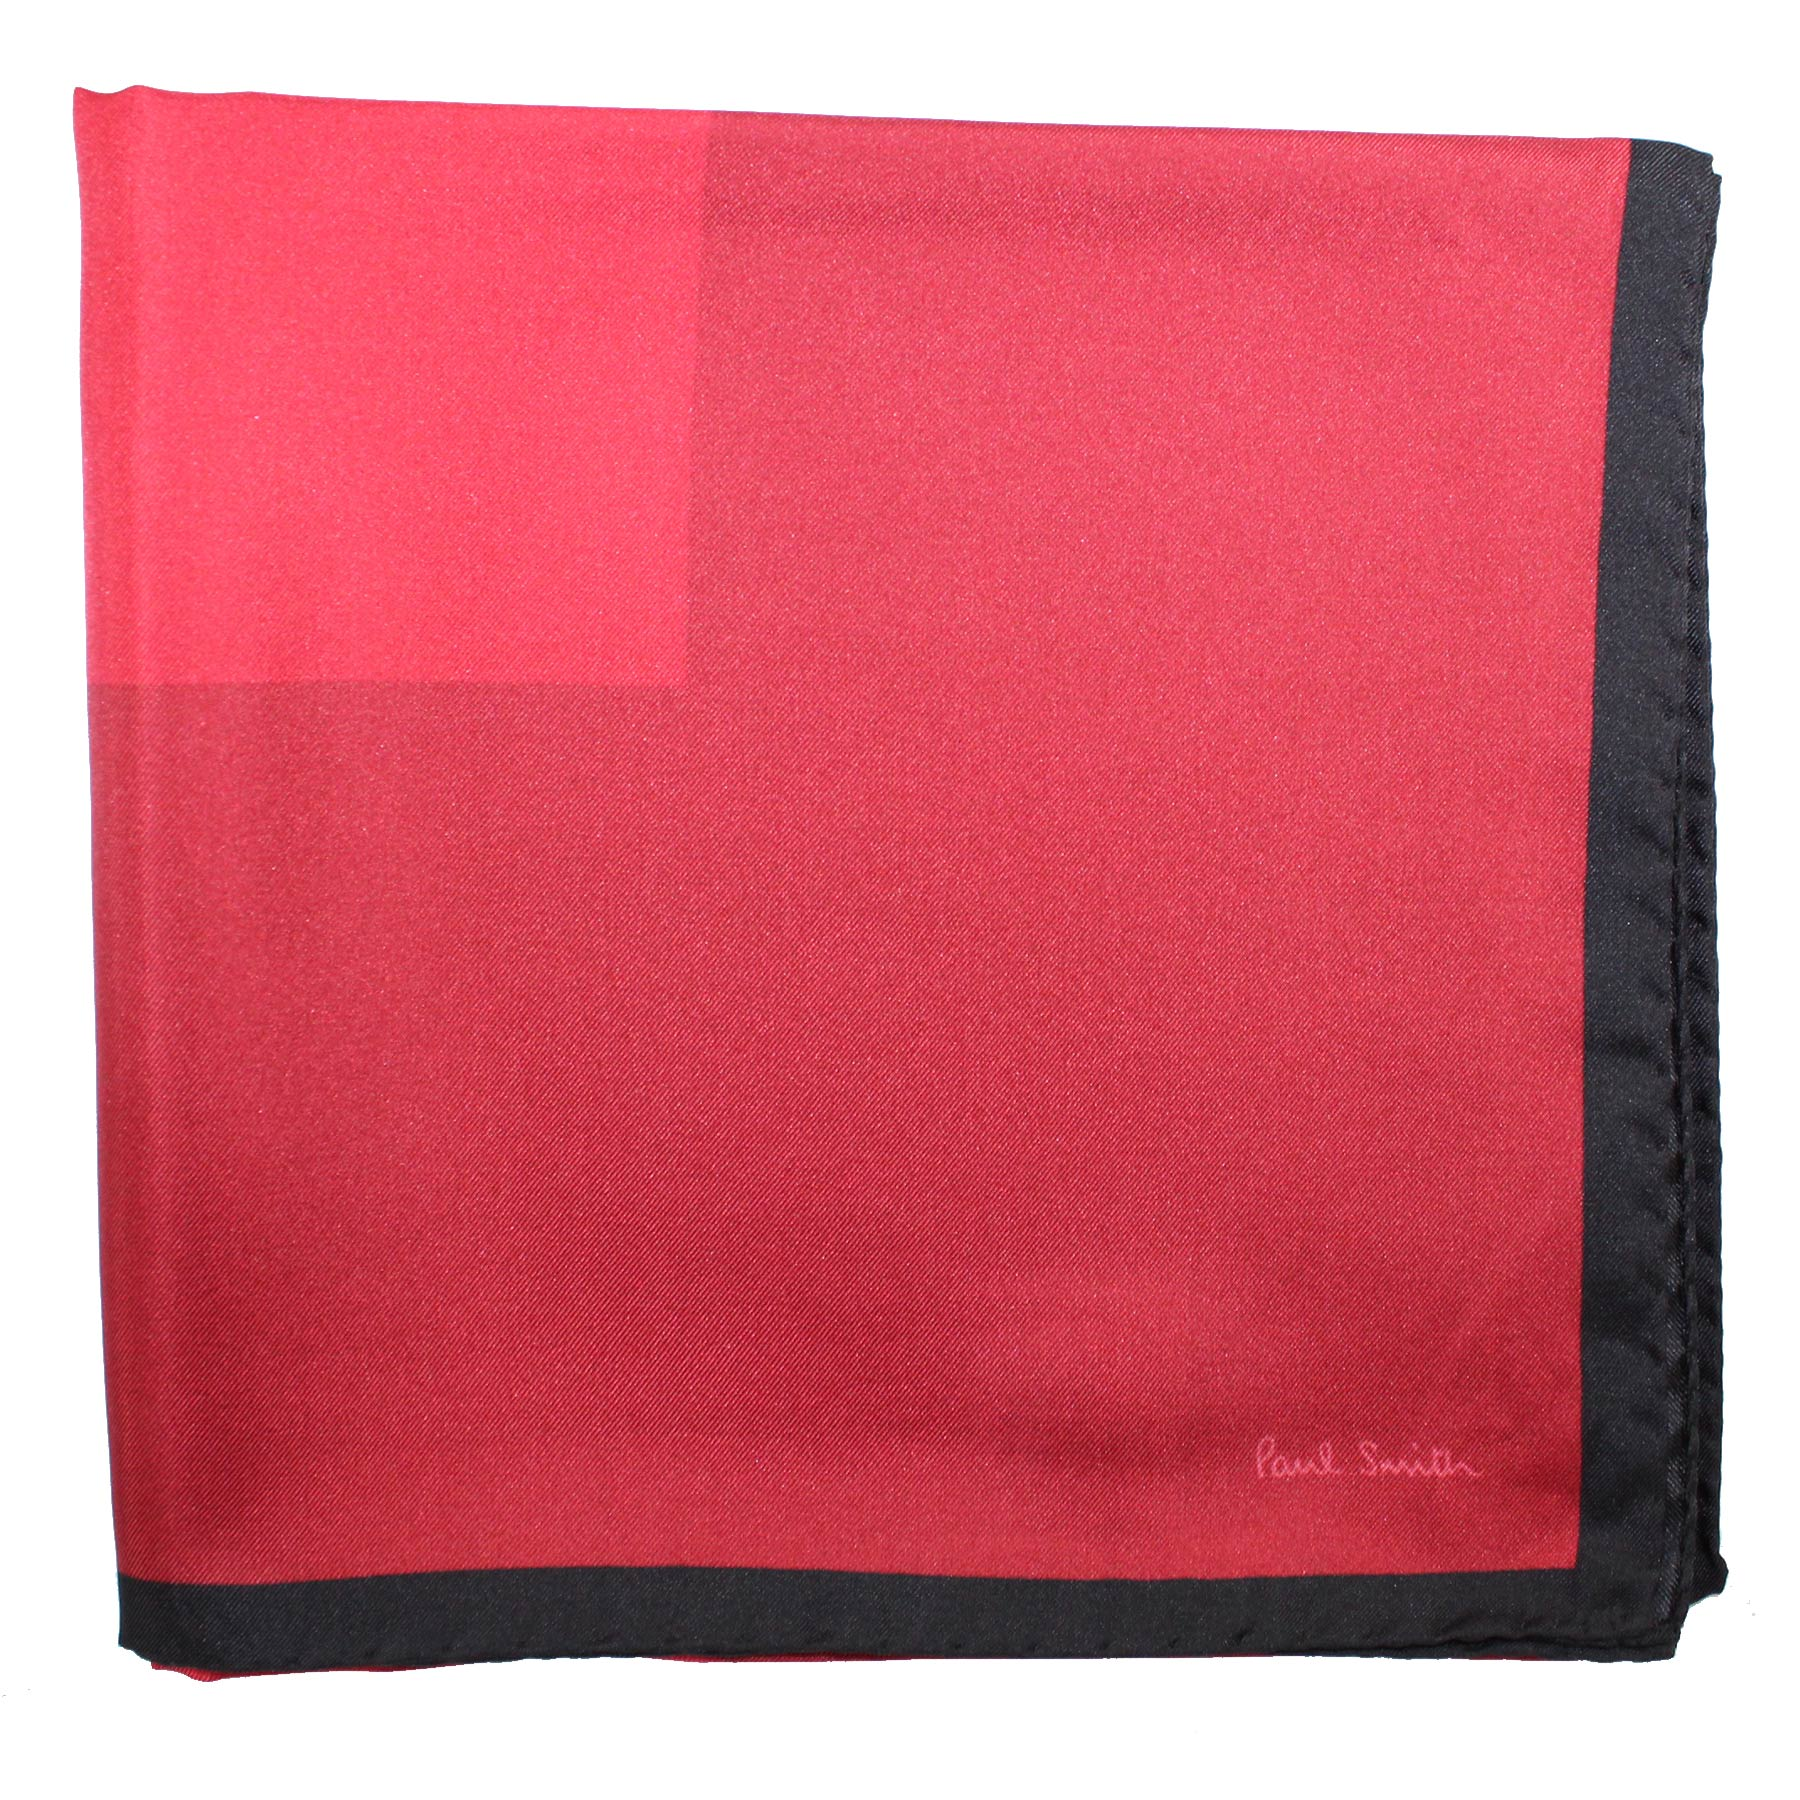 Paul Smith Silk Scarf - Women Collection - Large Square Foulard